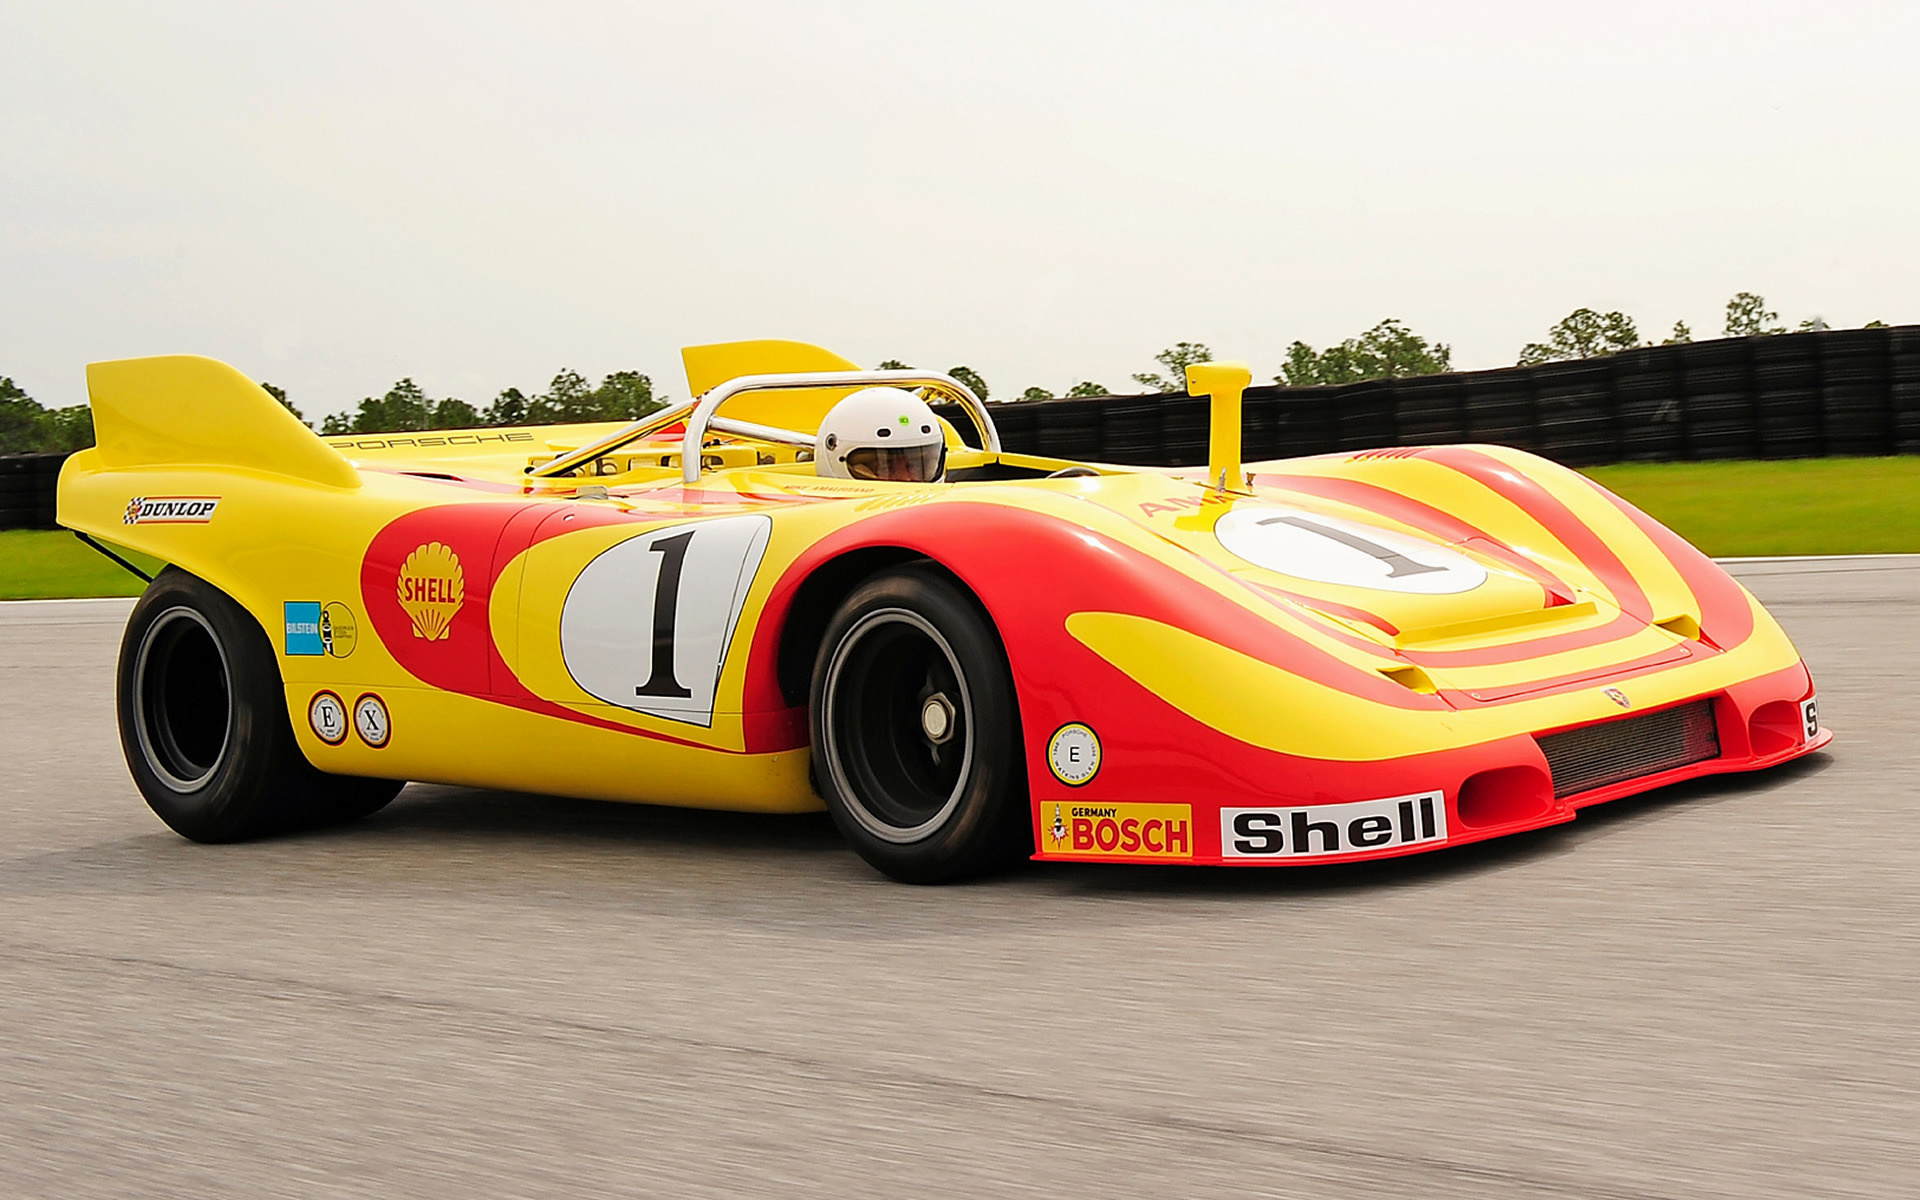 Porsche 917/10 Spyder Interserie (1972) Wallpapers and HD Images - Car Pixel